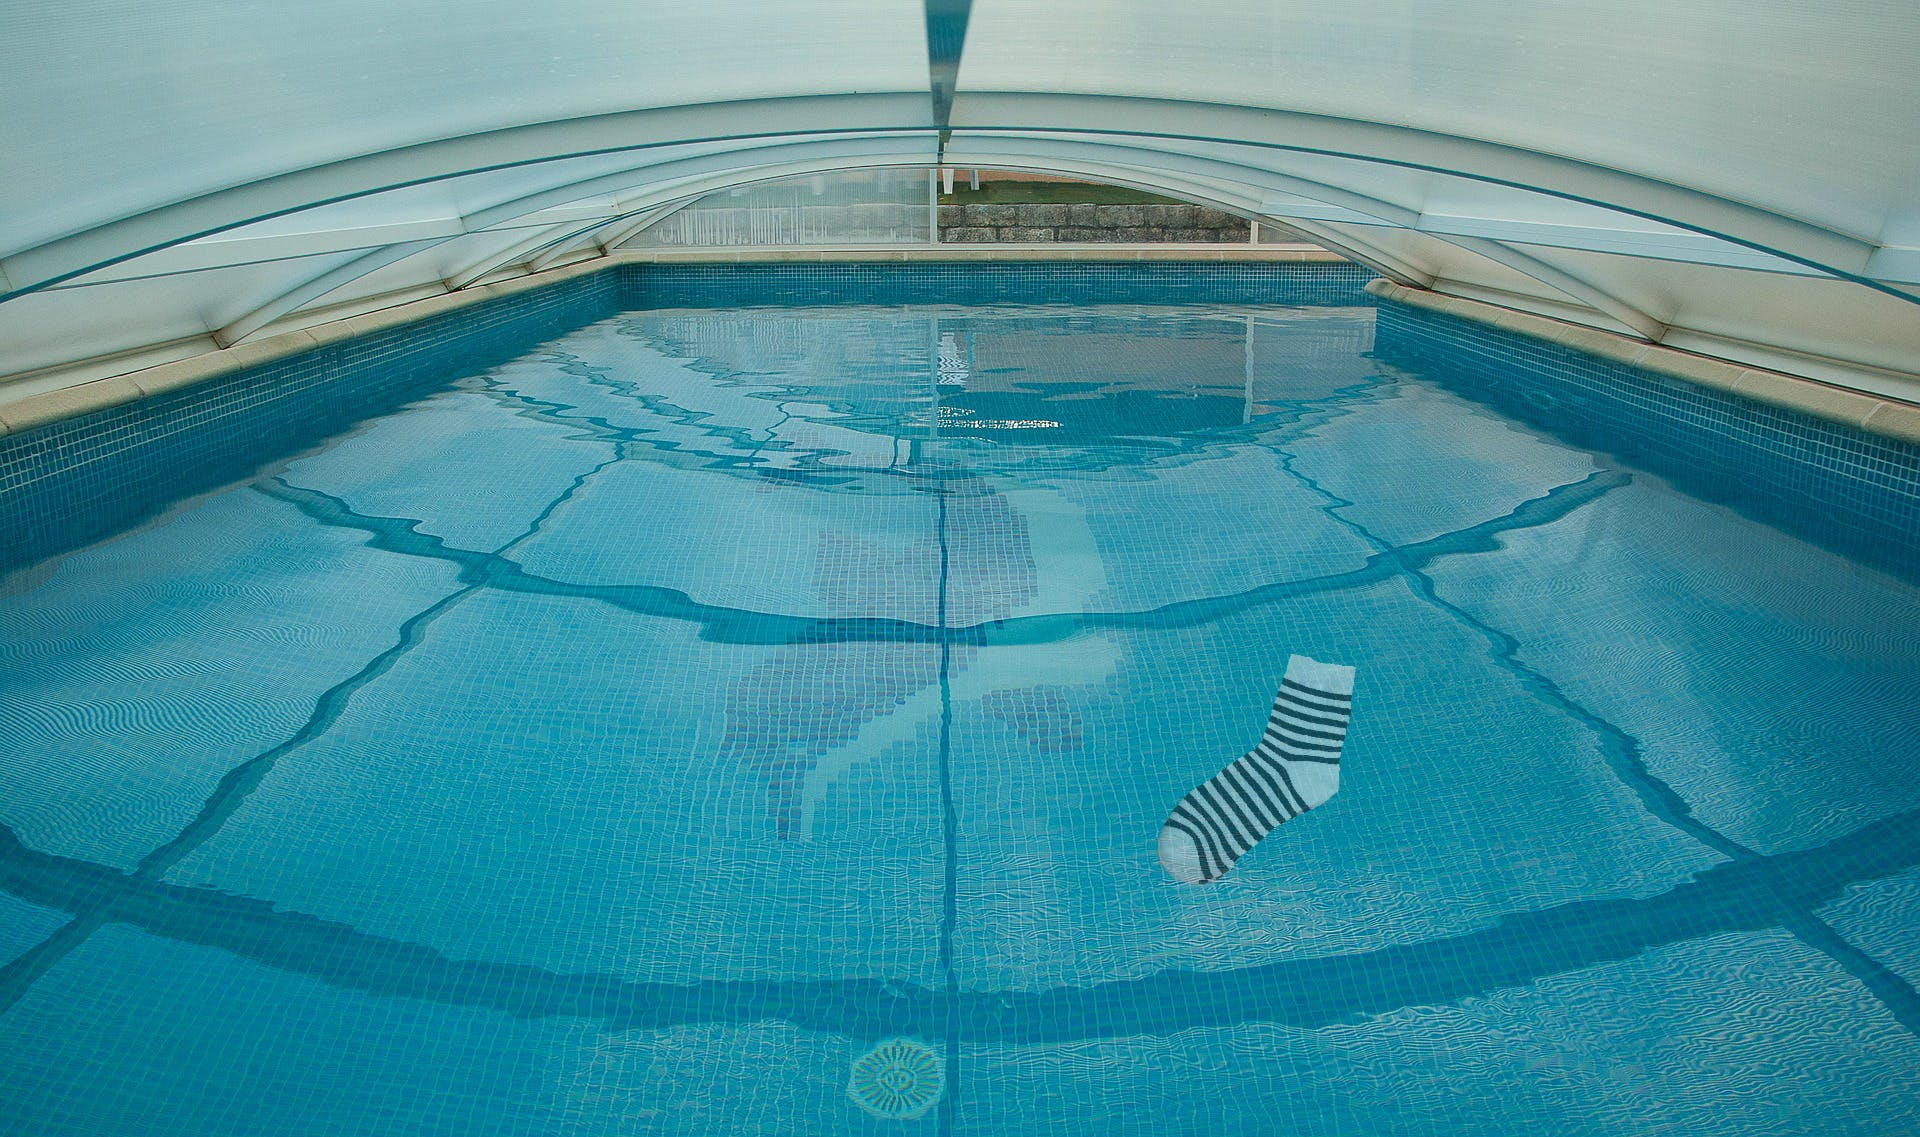 Here's a sock at the bottom of a swimming pool